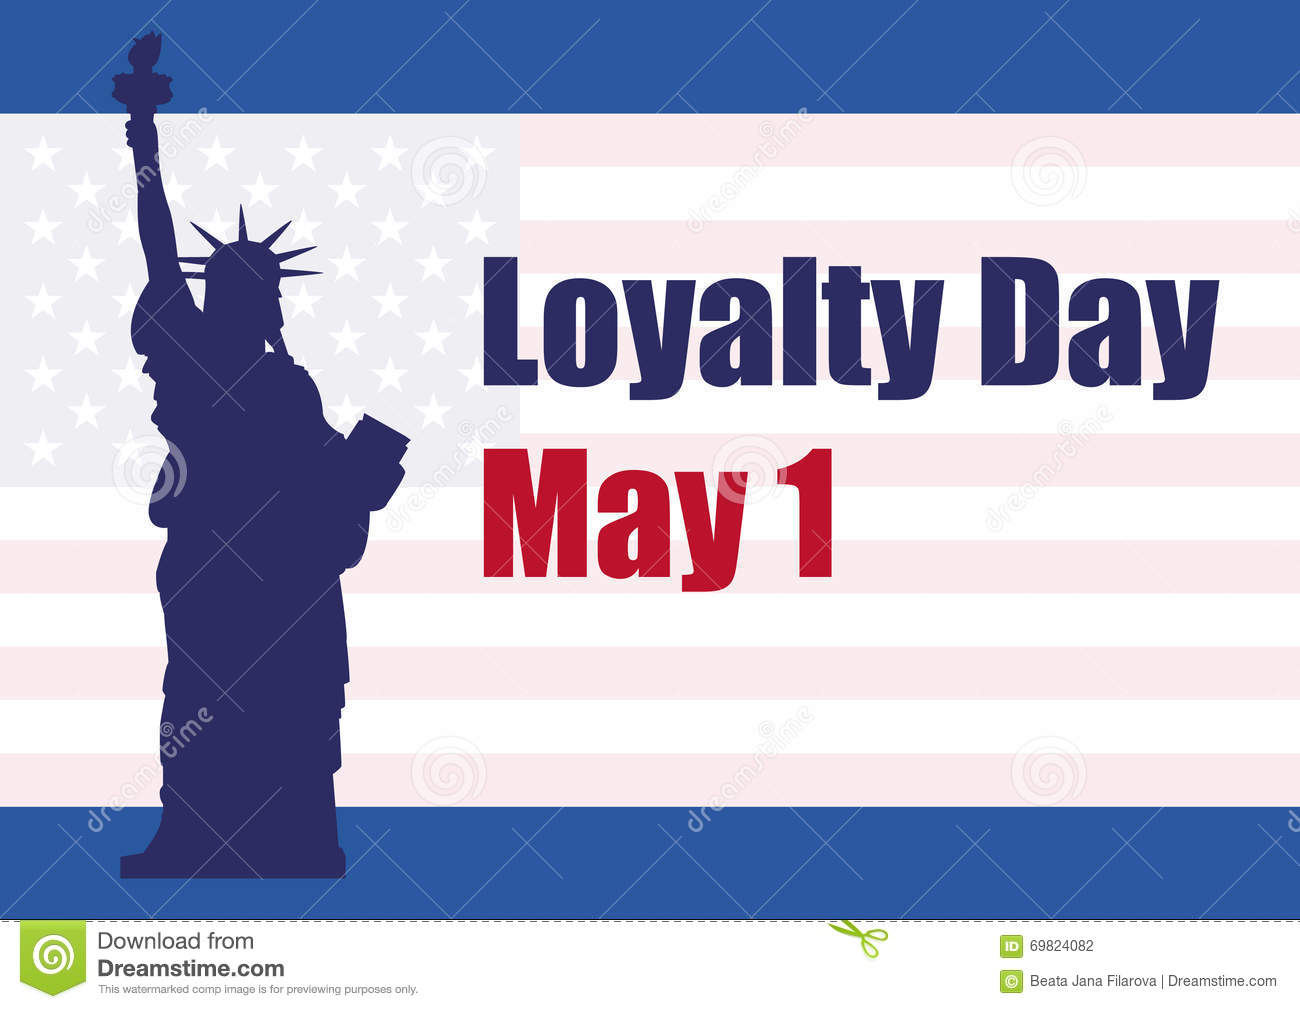 14-Loyalty Day Wishes